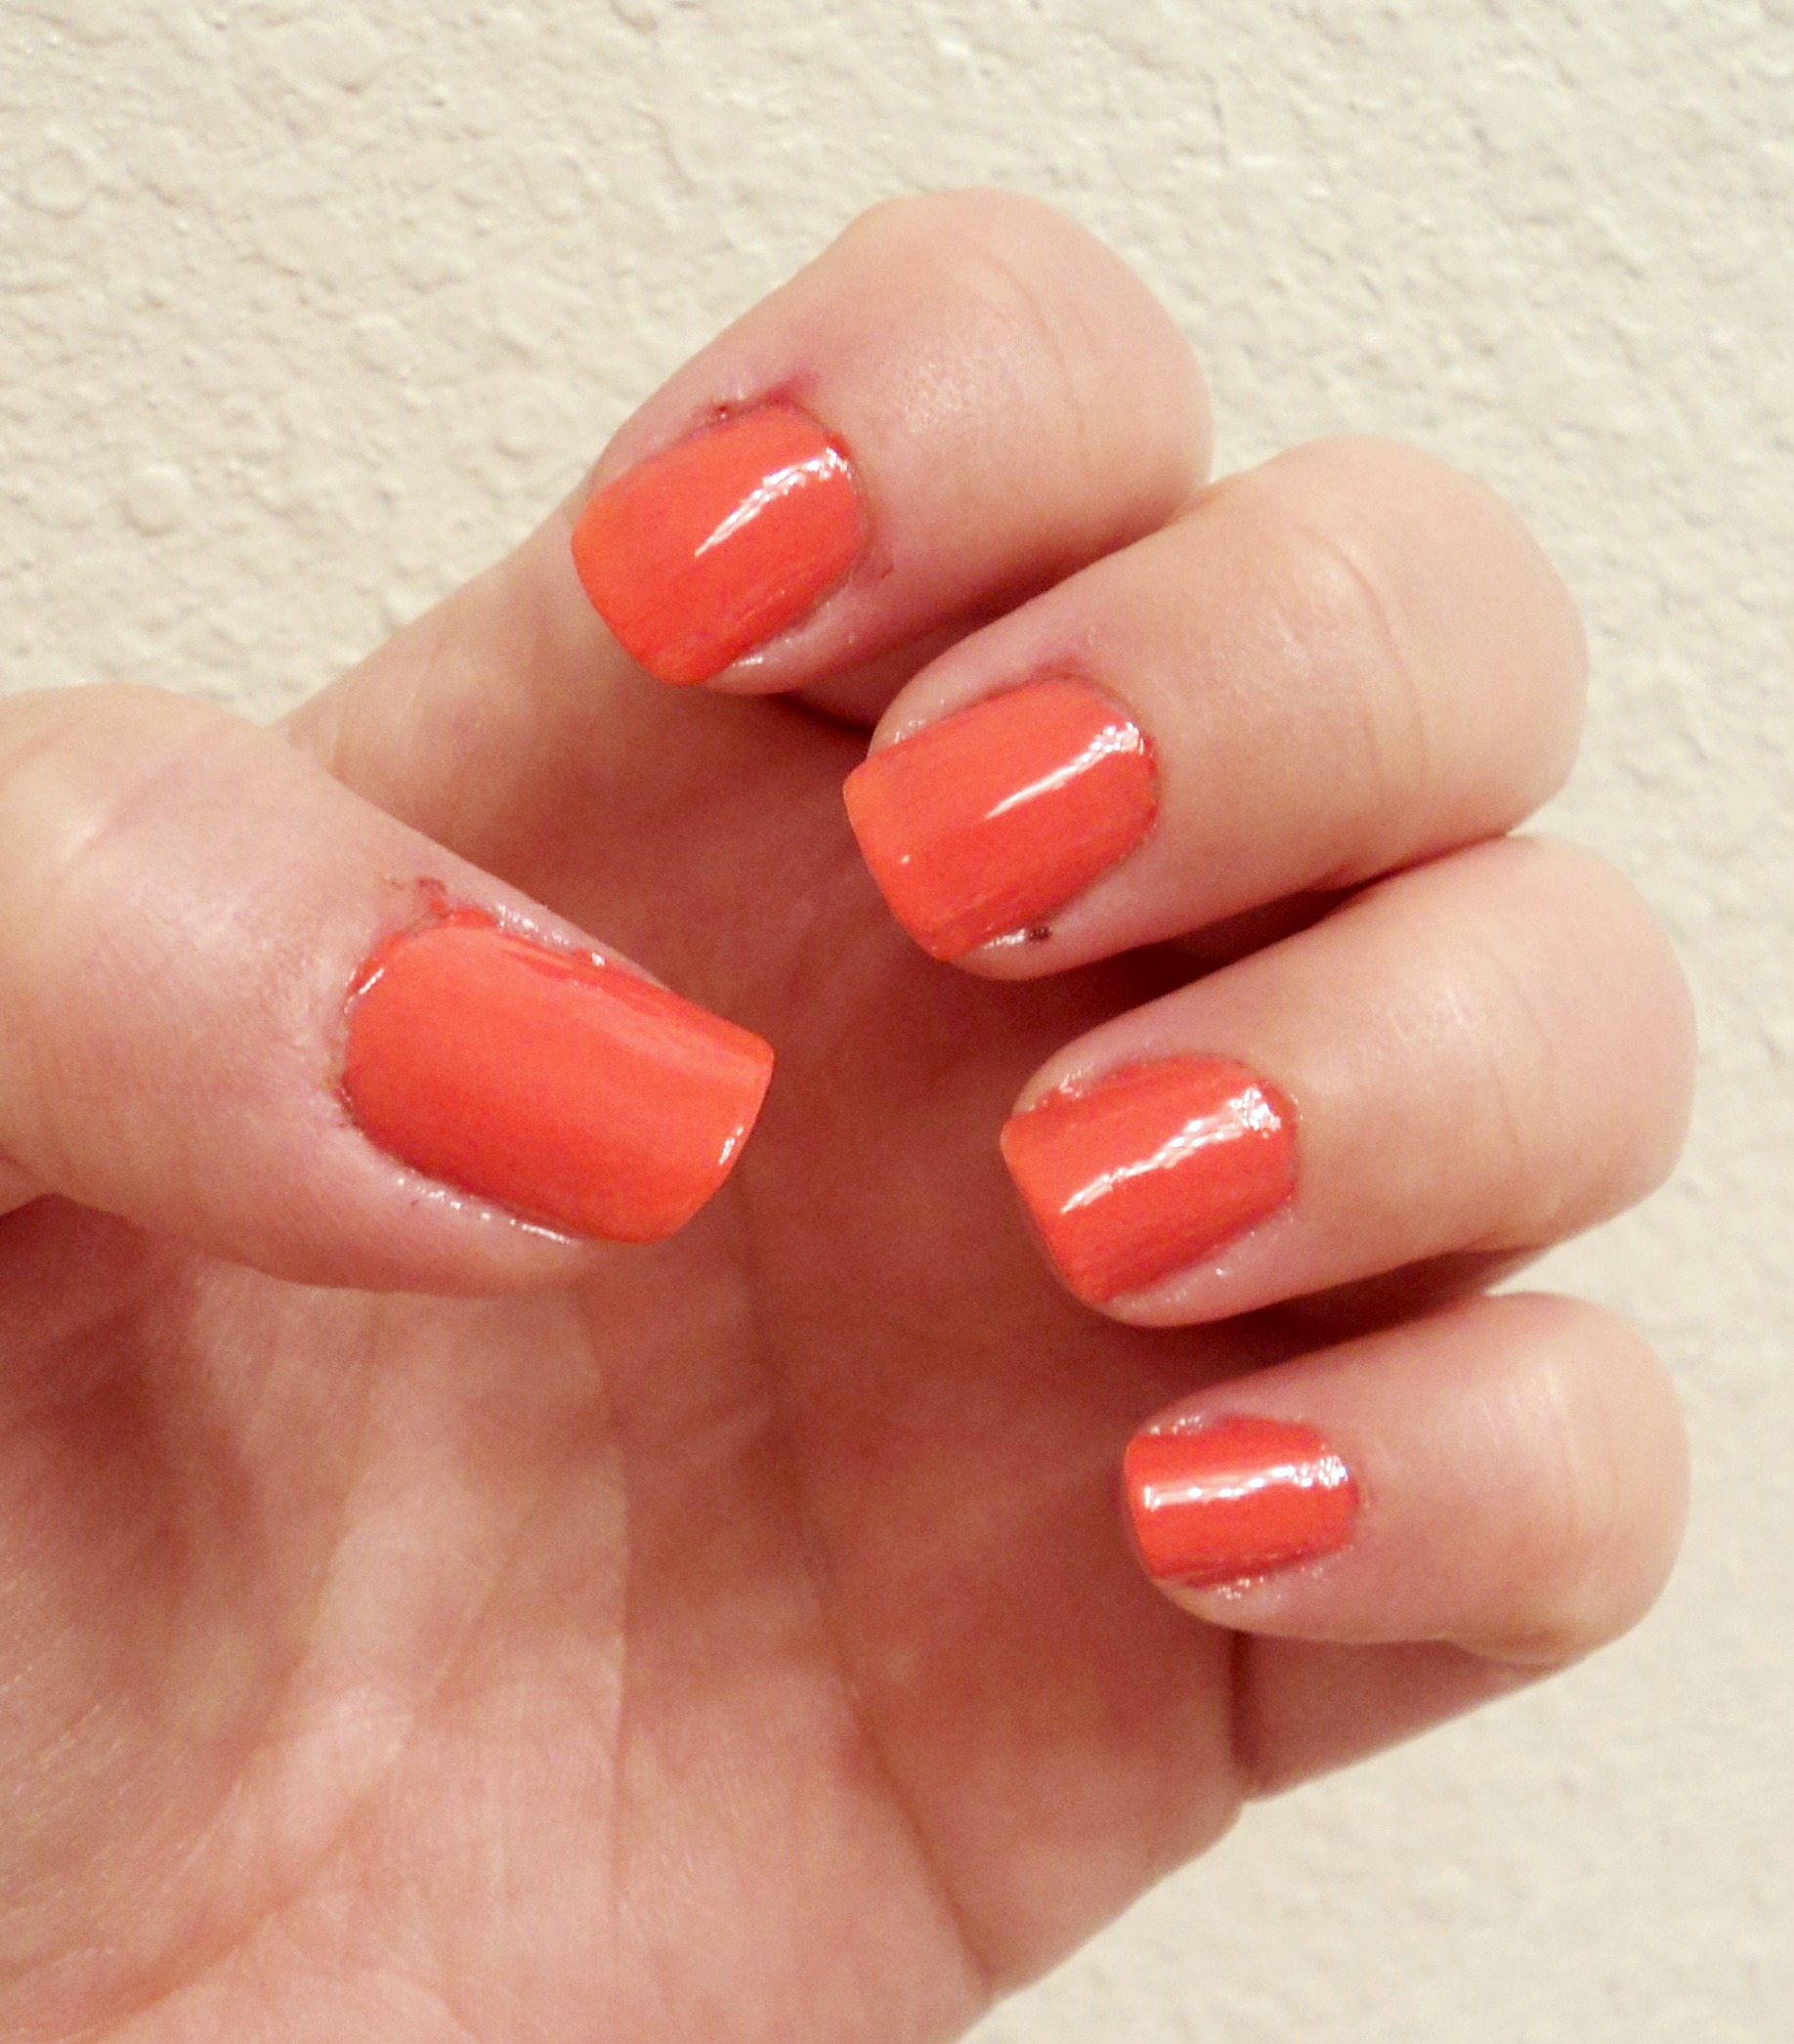 Nail Buttons: Manicure Monday: Essie Cute As A Button